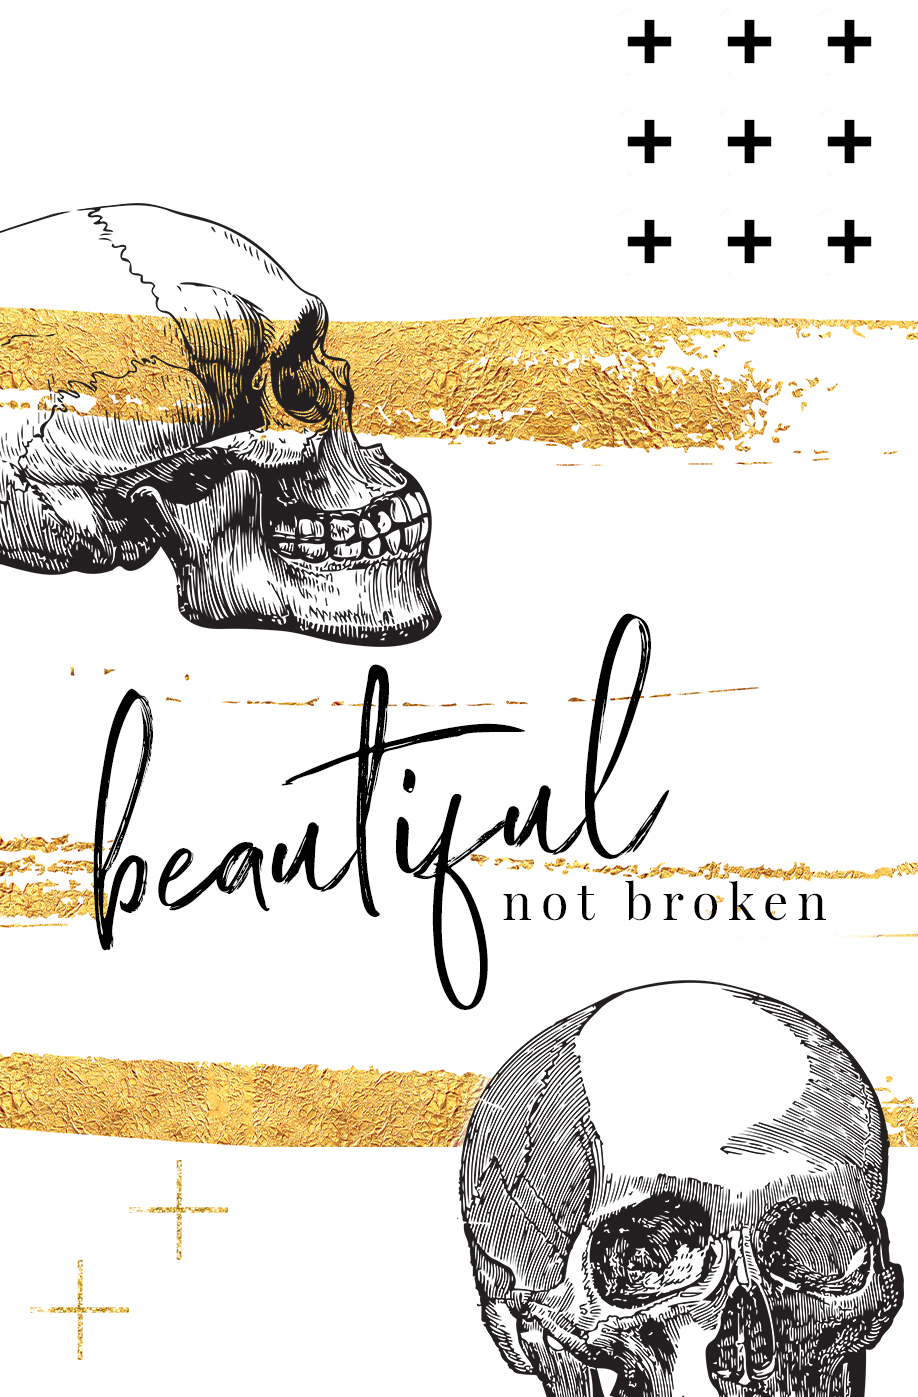 black and gold skull broken not beautiful quote iPhone background